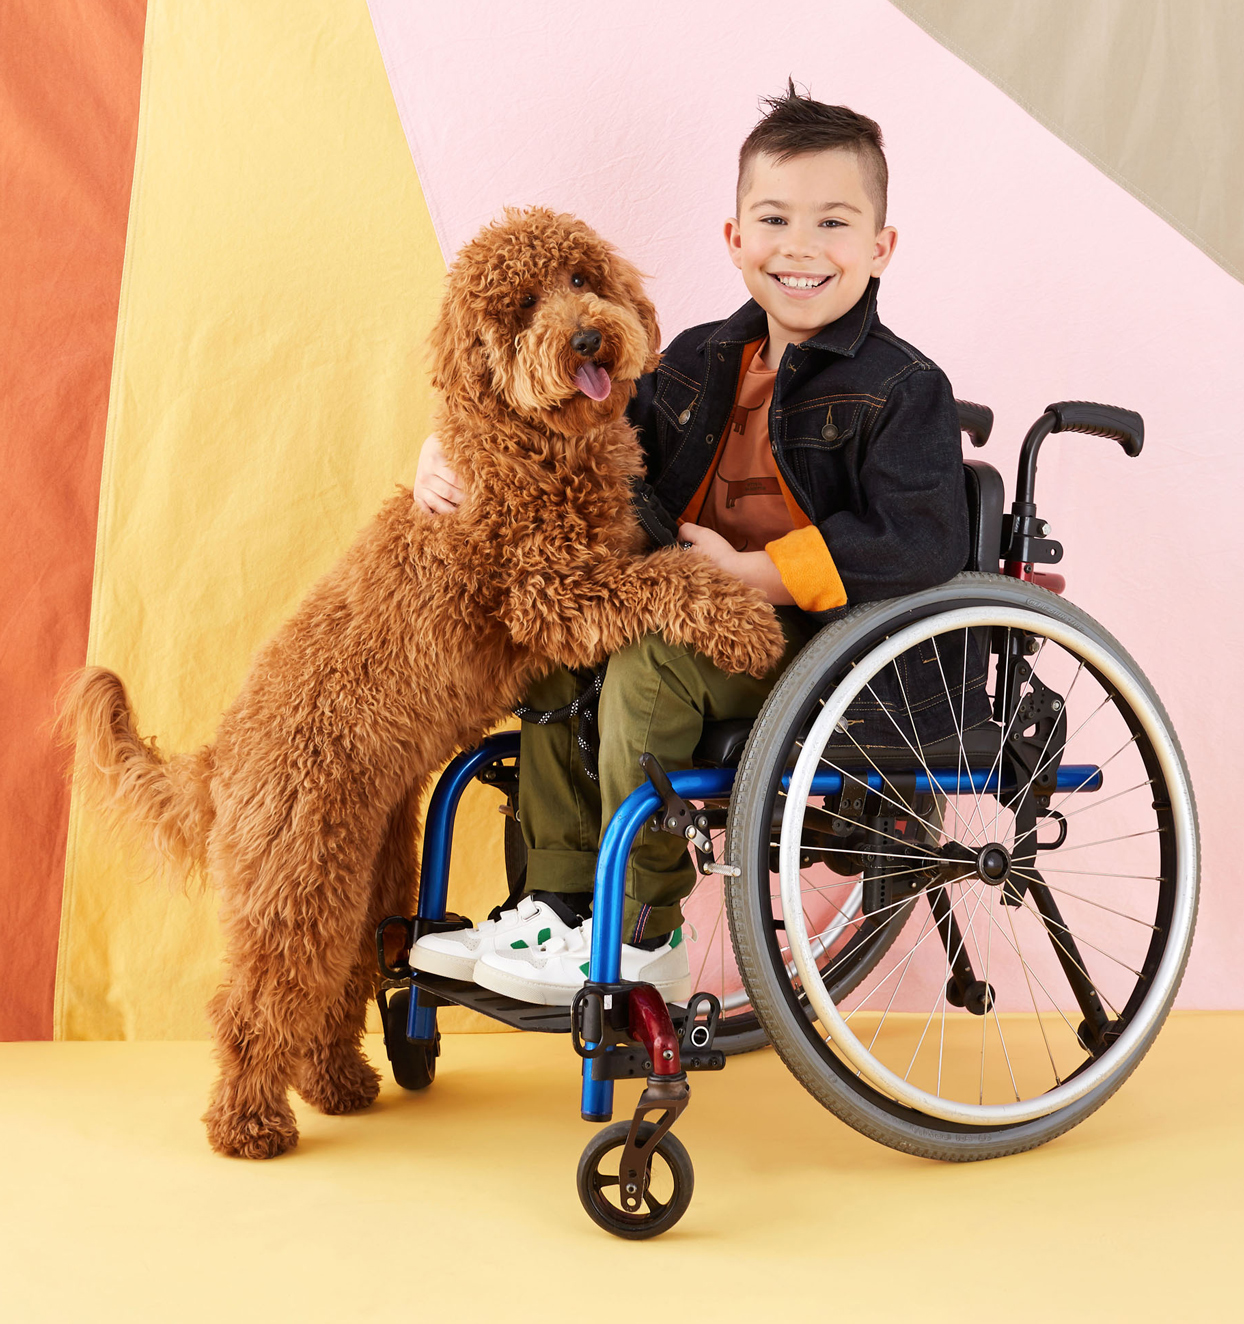 kid sitting in wheelchair smiling with dog